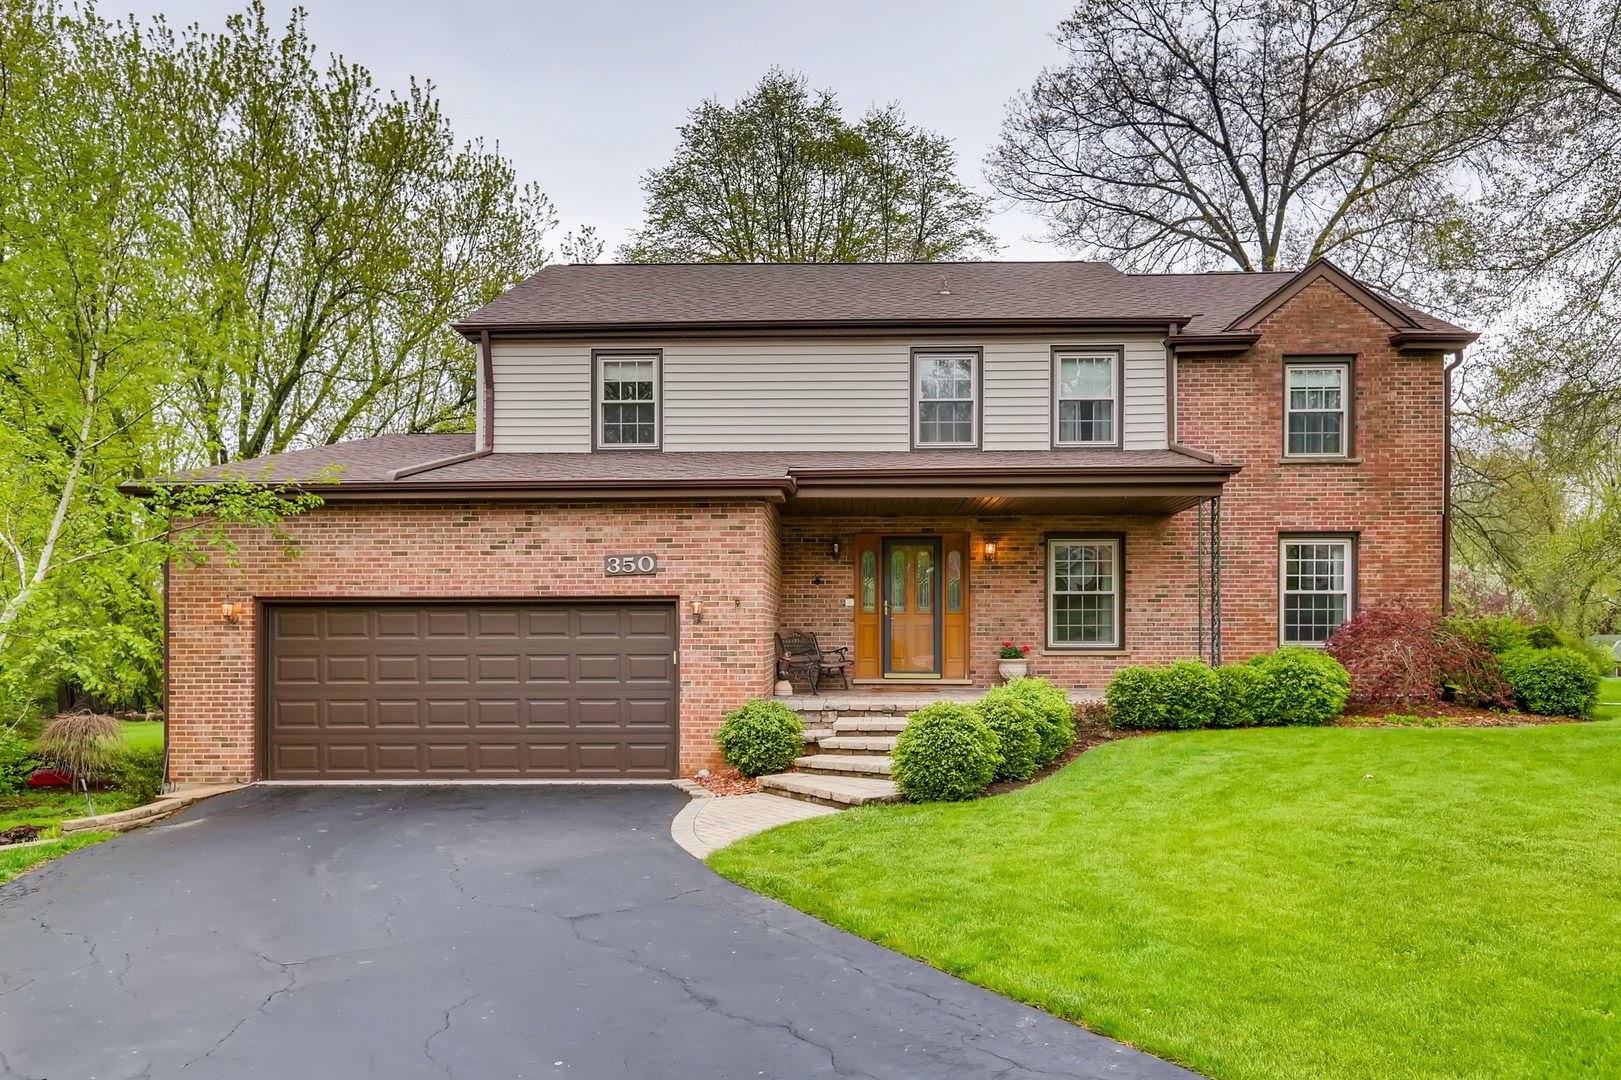 350 Windsor Lane, Inverness, IL 60010 - #: 10724706